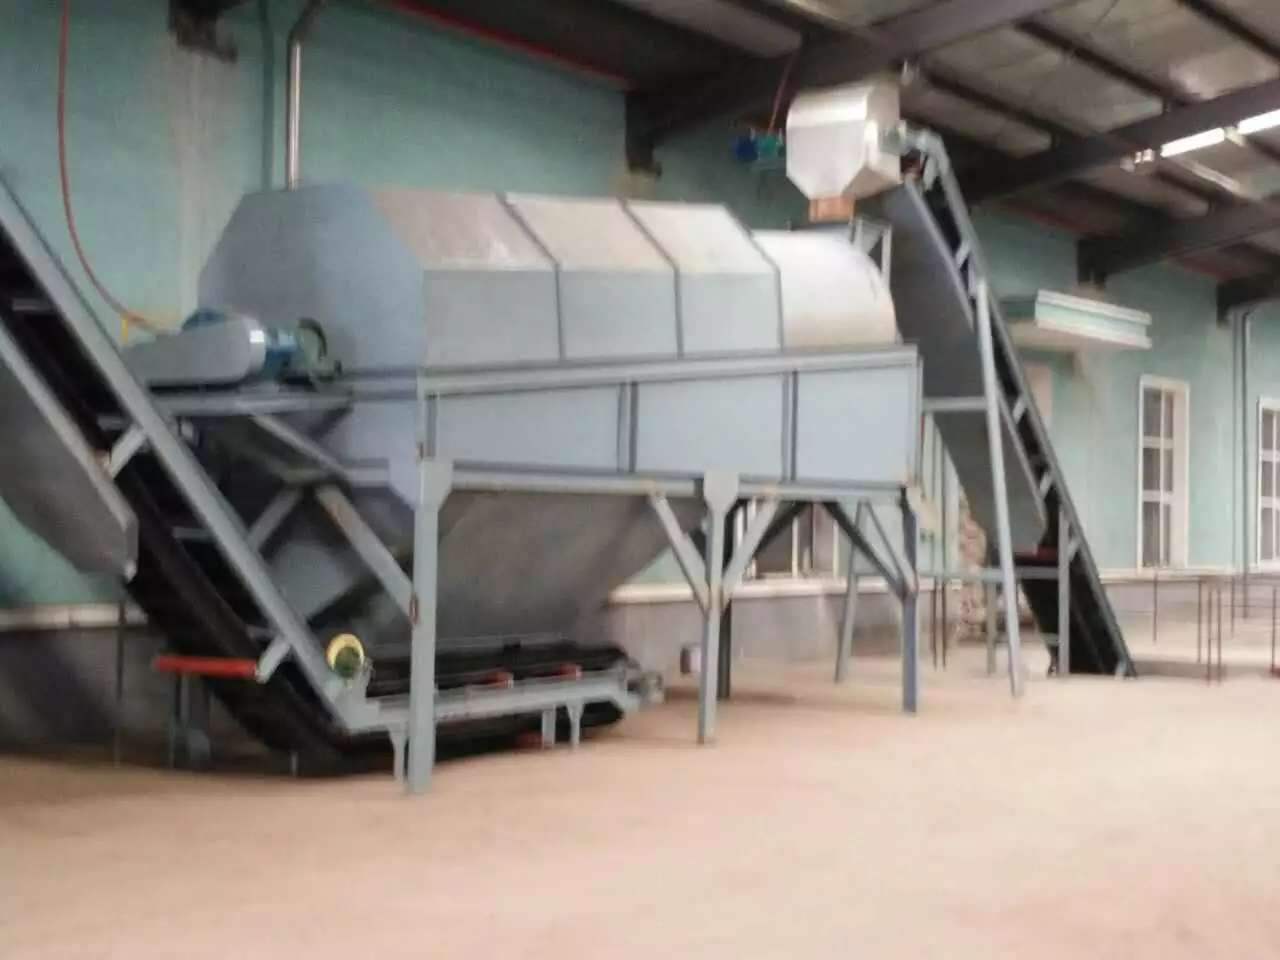 Fertilizer mixing equipment